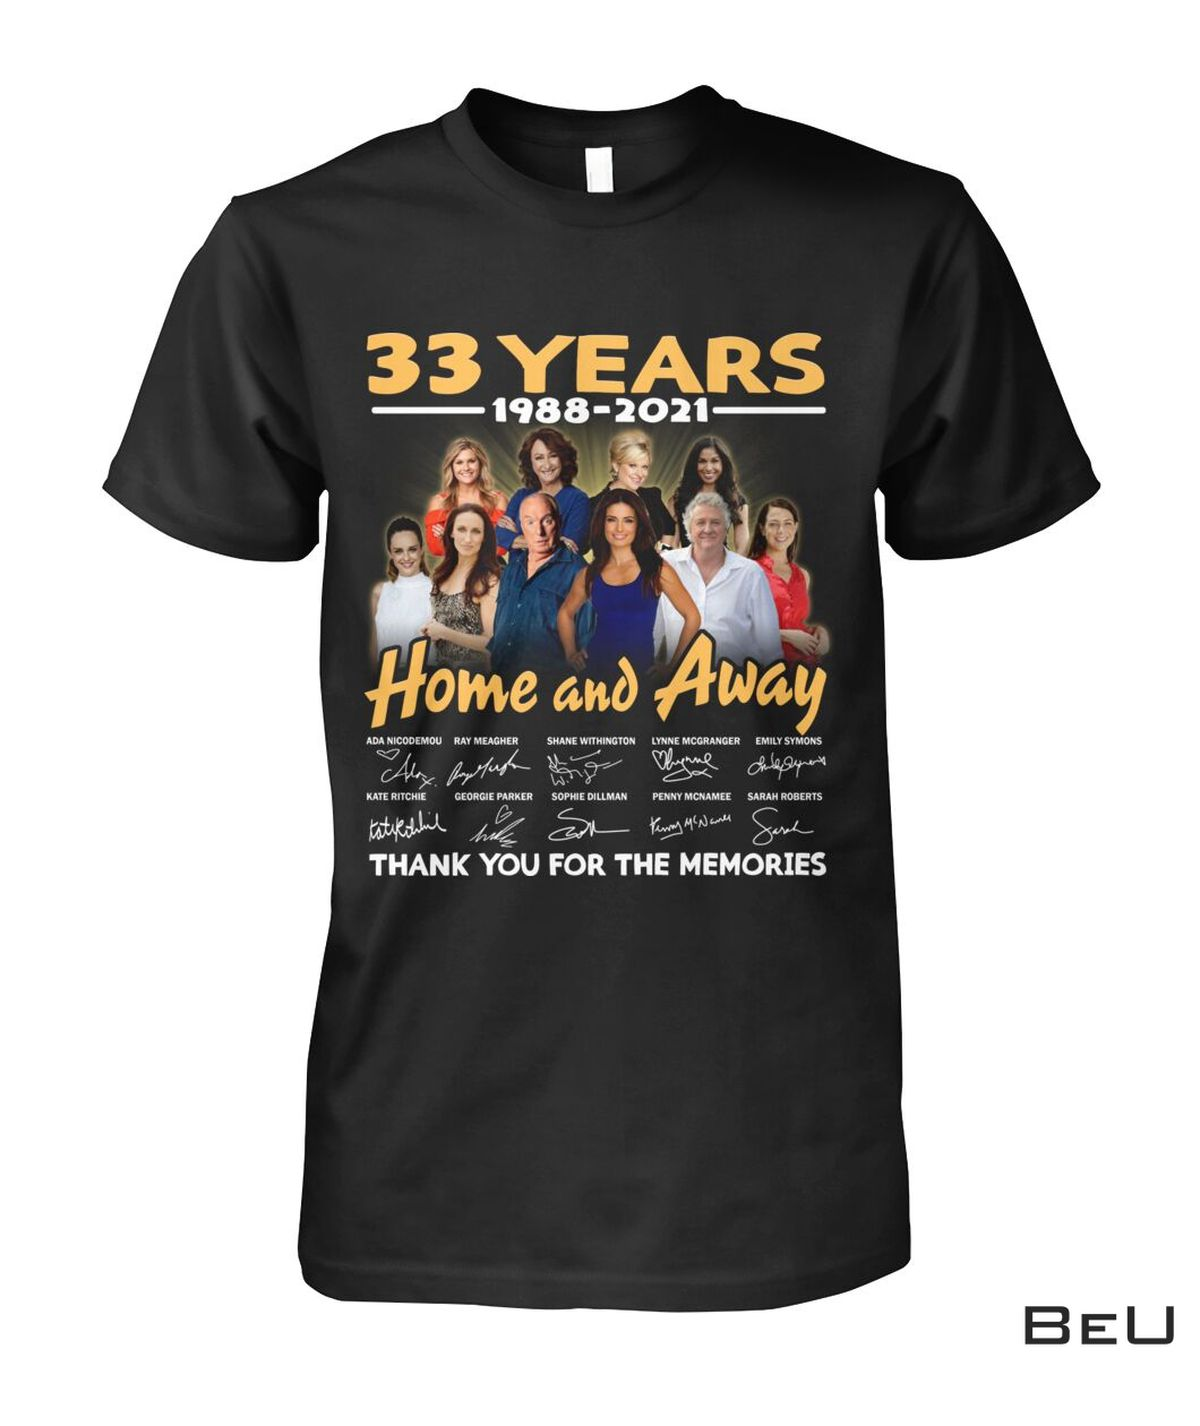 Only For Fan 33 Years Home And Away Thank You For The Memories Shirt, hoodie, tank top